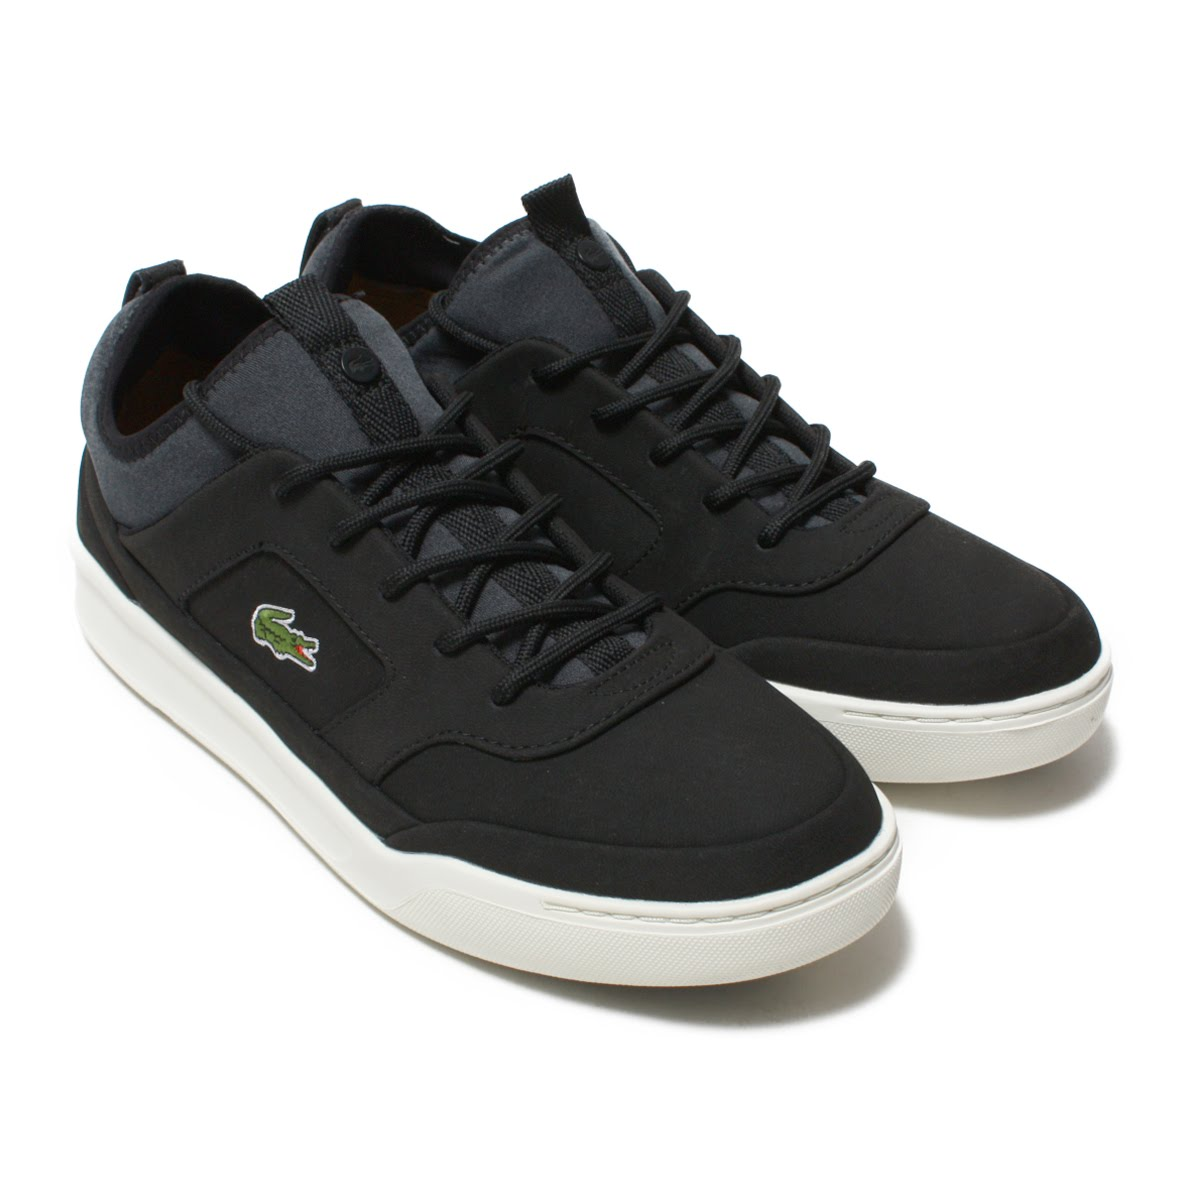 LACOSTE EXPLORATEUR CRFT SP 118 1(ラコステ エクスプロラトゥール クラフト SP 118 1)BLK/OFF WHT【メンズ スニーカー】18SP-I